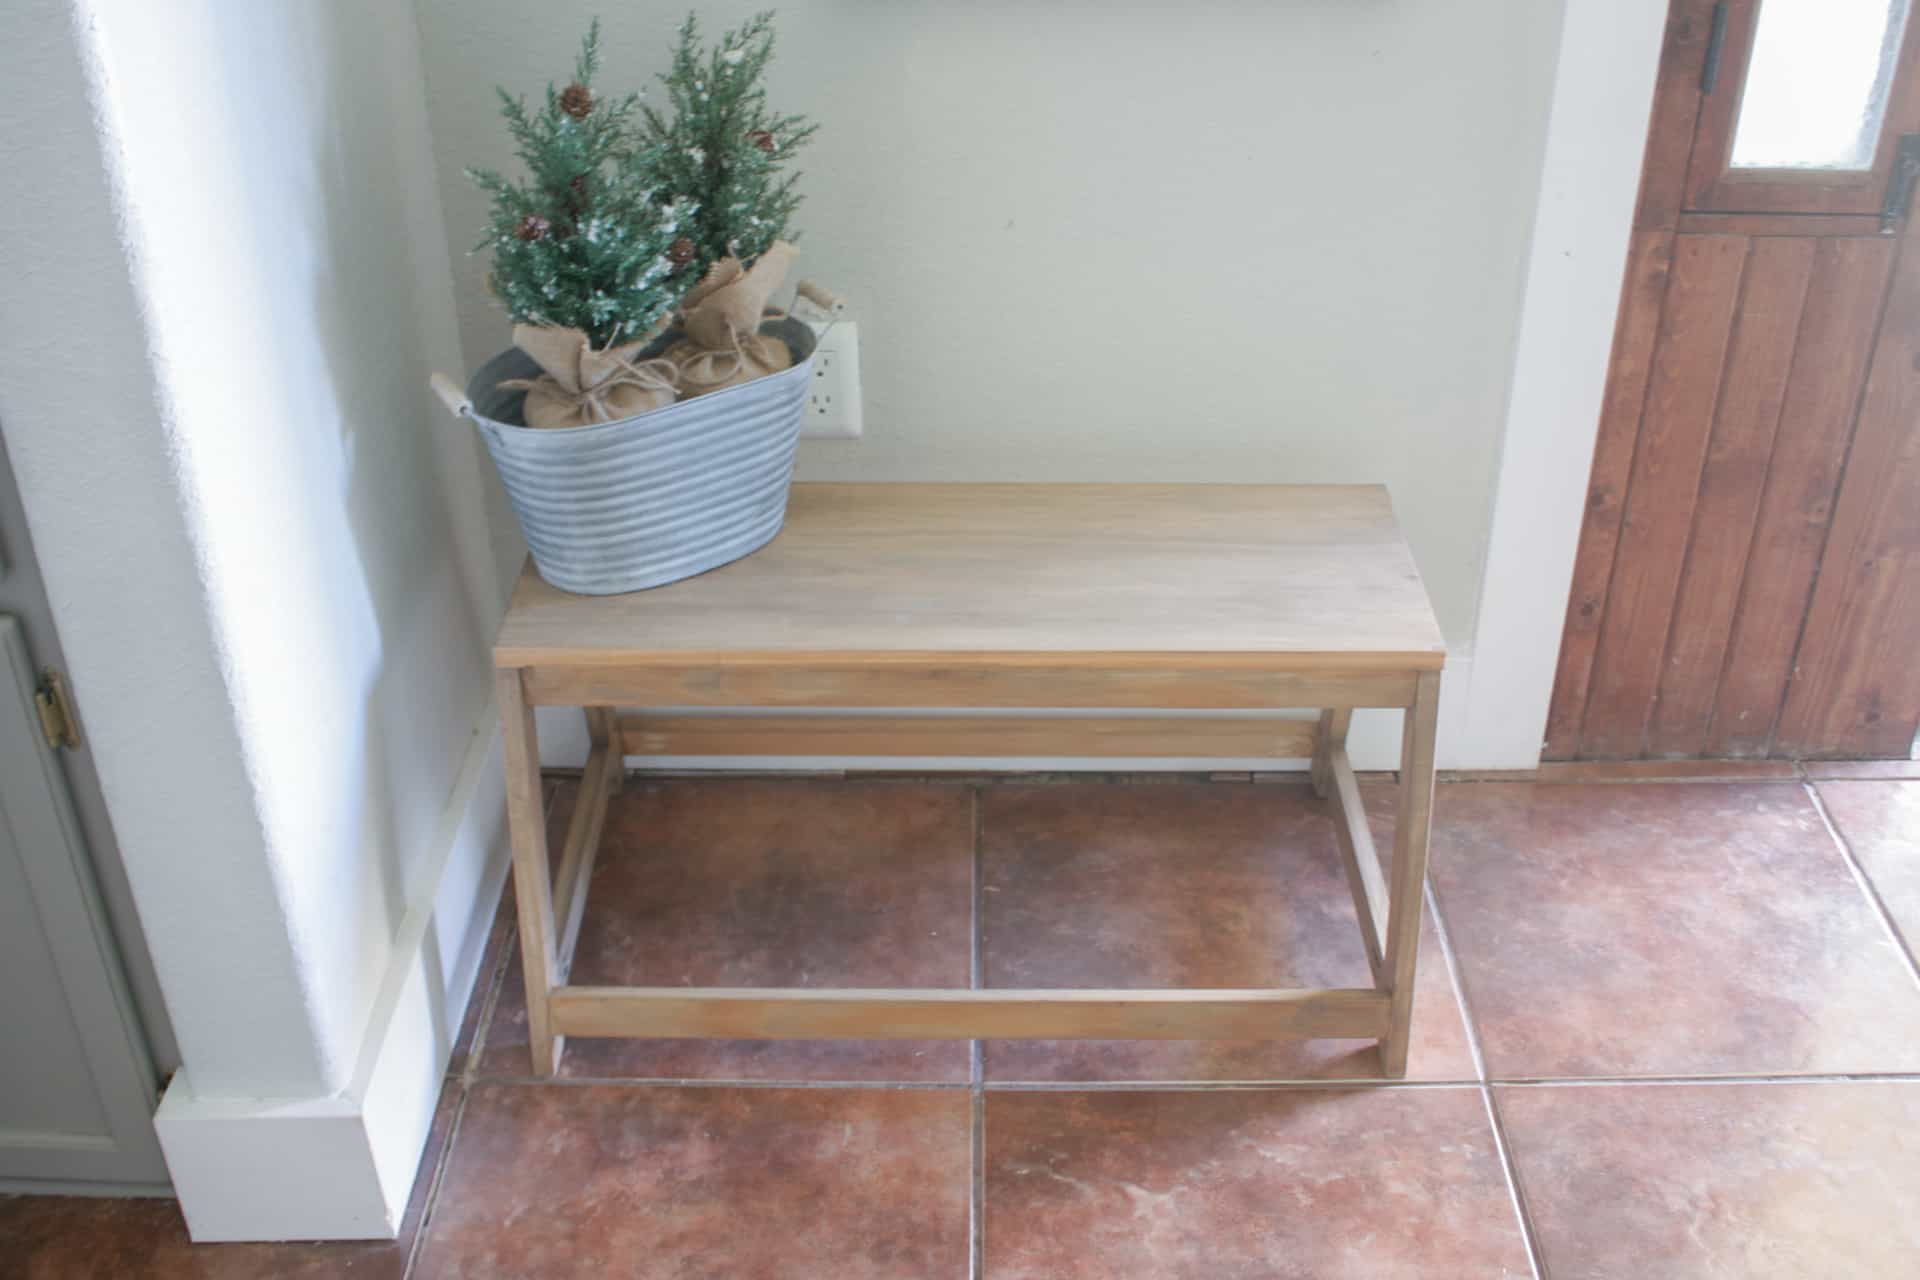 Joanna Gaines Bench